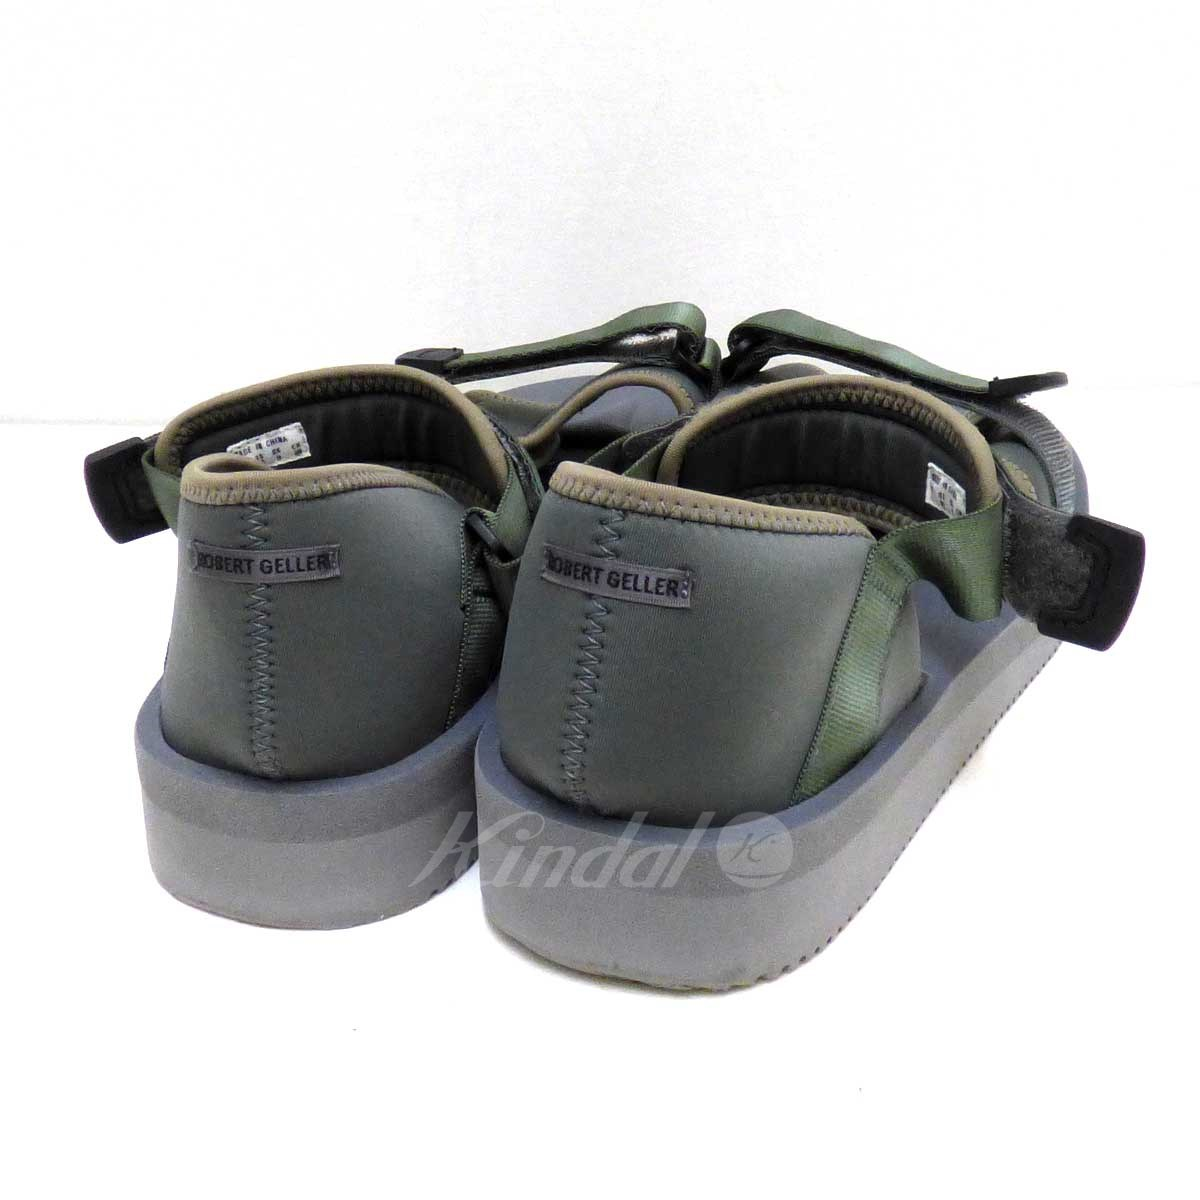 fc8f1397a60 ... Suicoke ROBERT GELLER collaboration sandals Vibram sole gray size: US10  (Sui cook) ...